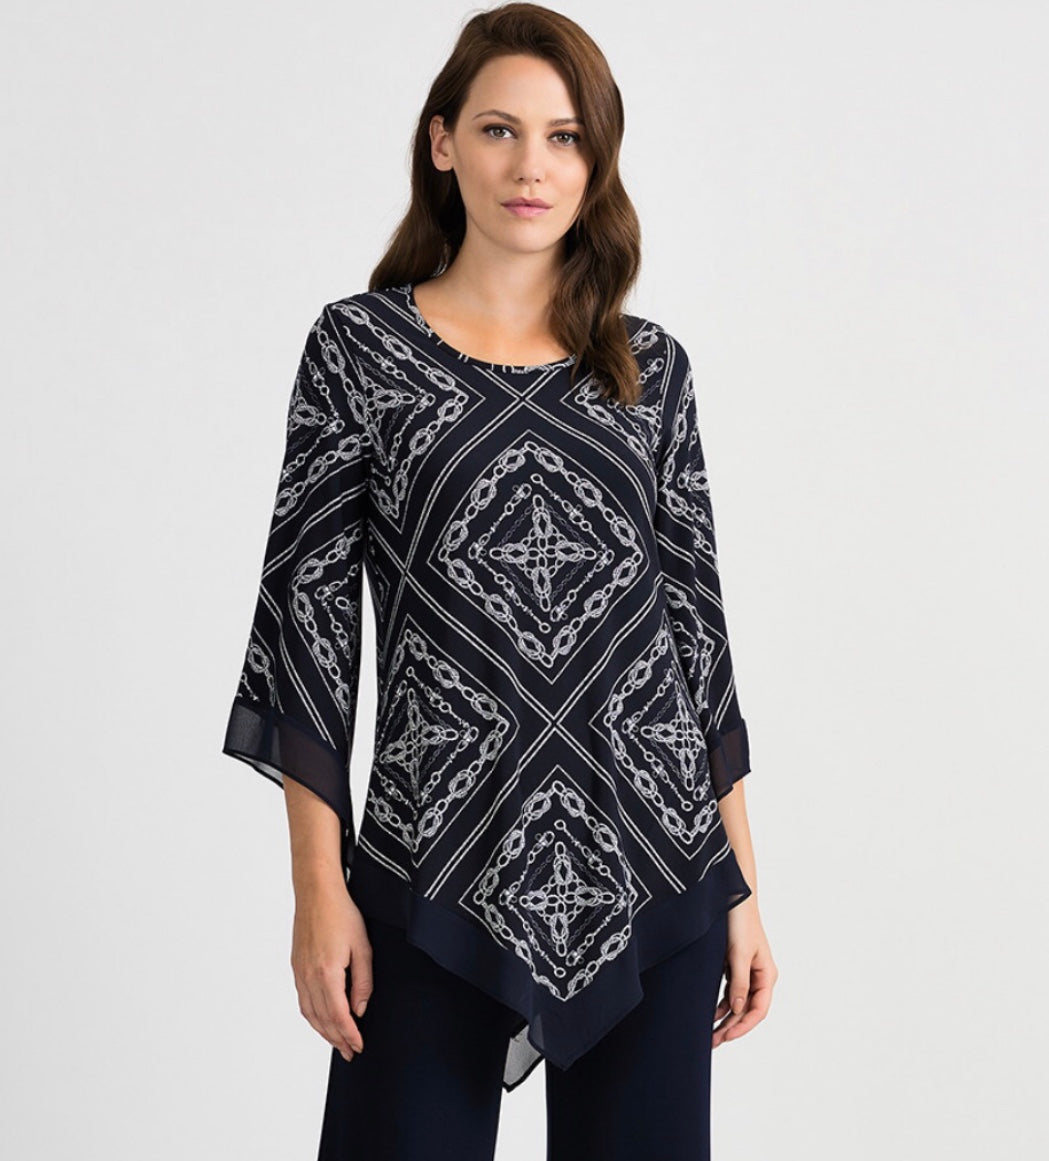 navy/ white print 3/4 sleeve tunic with georgette trim